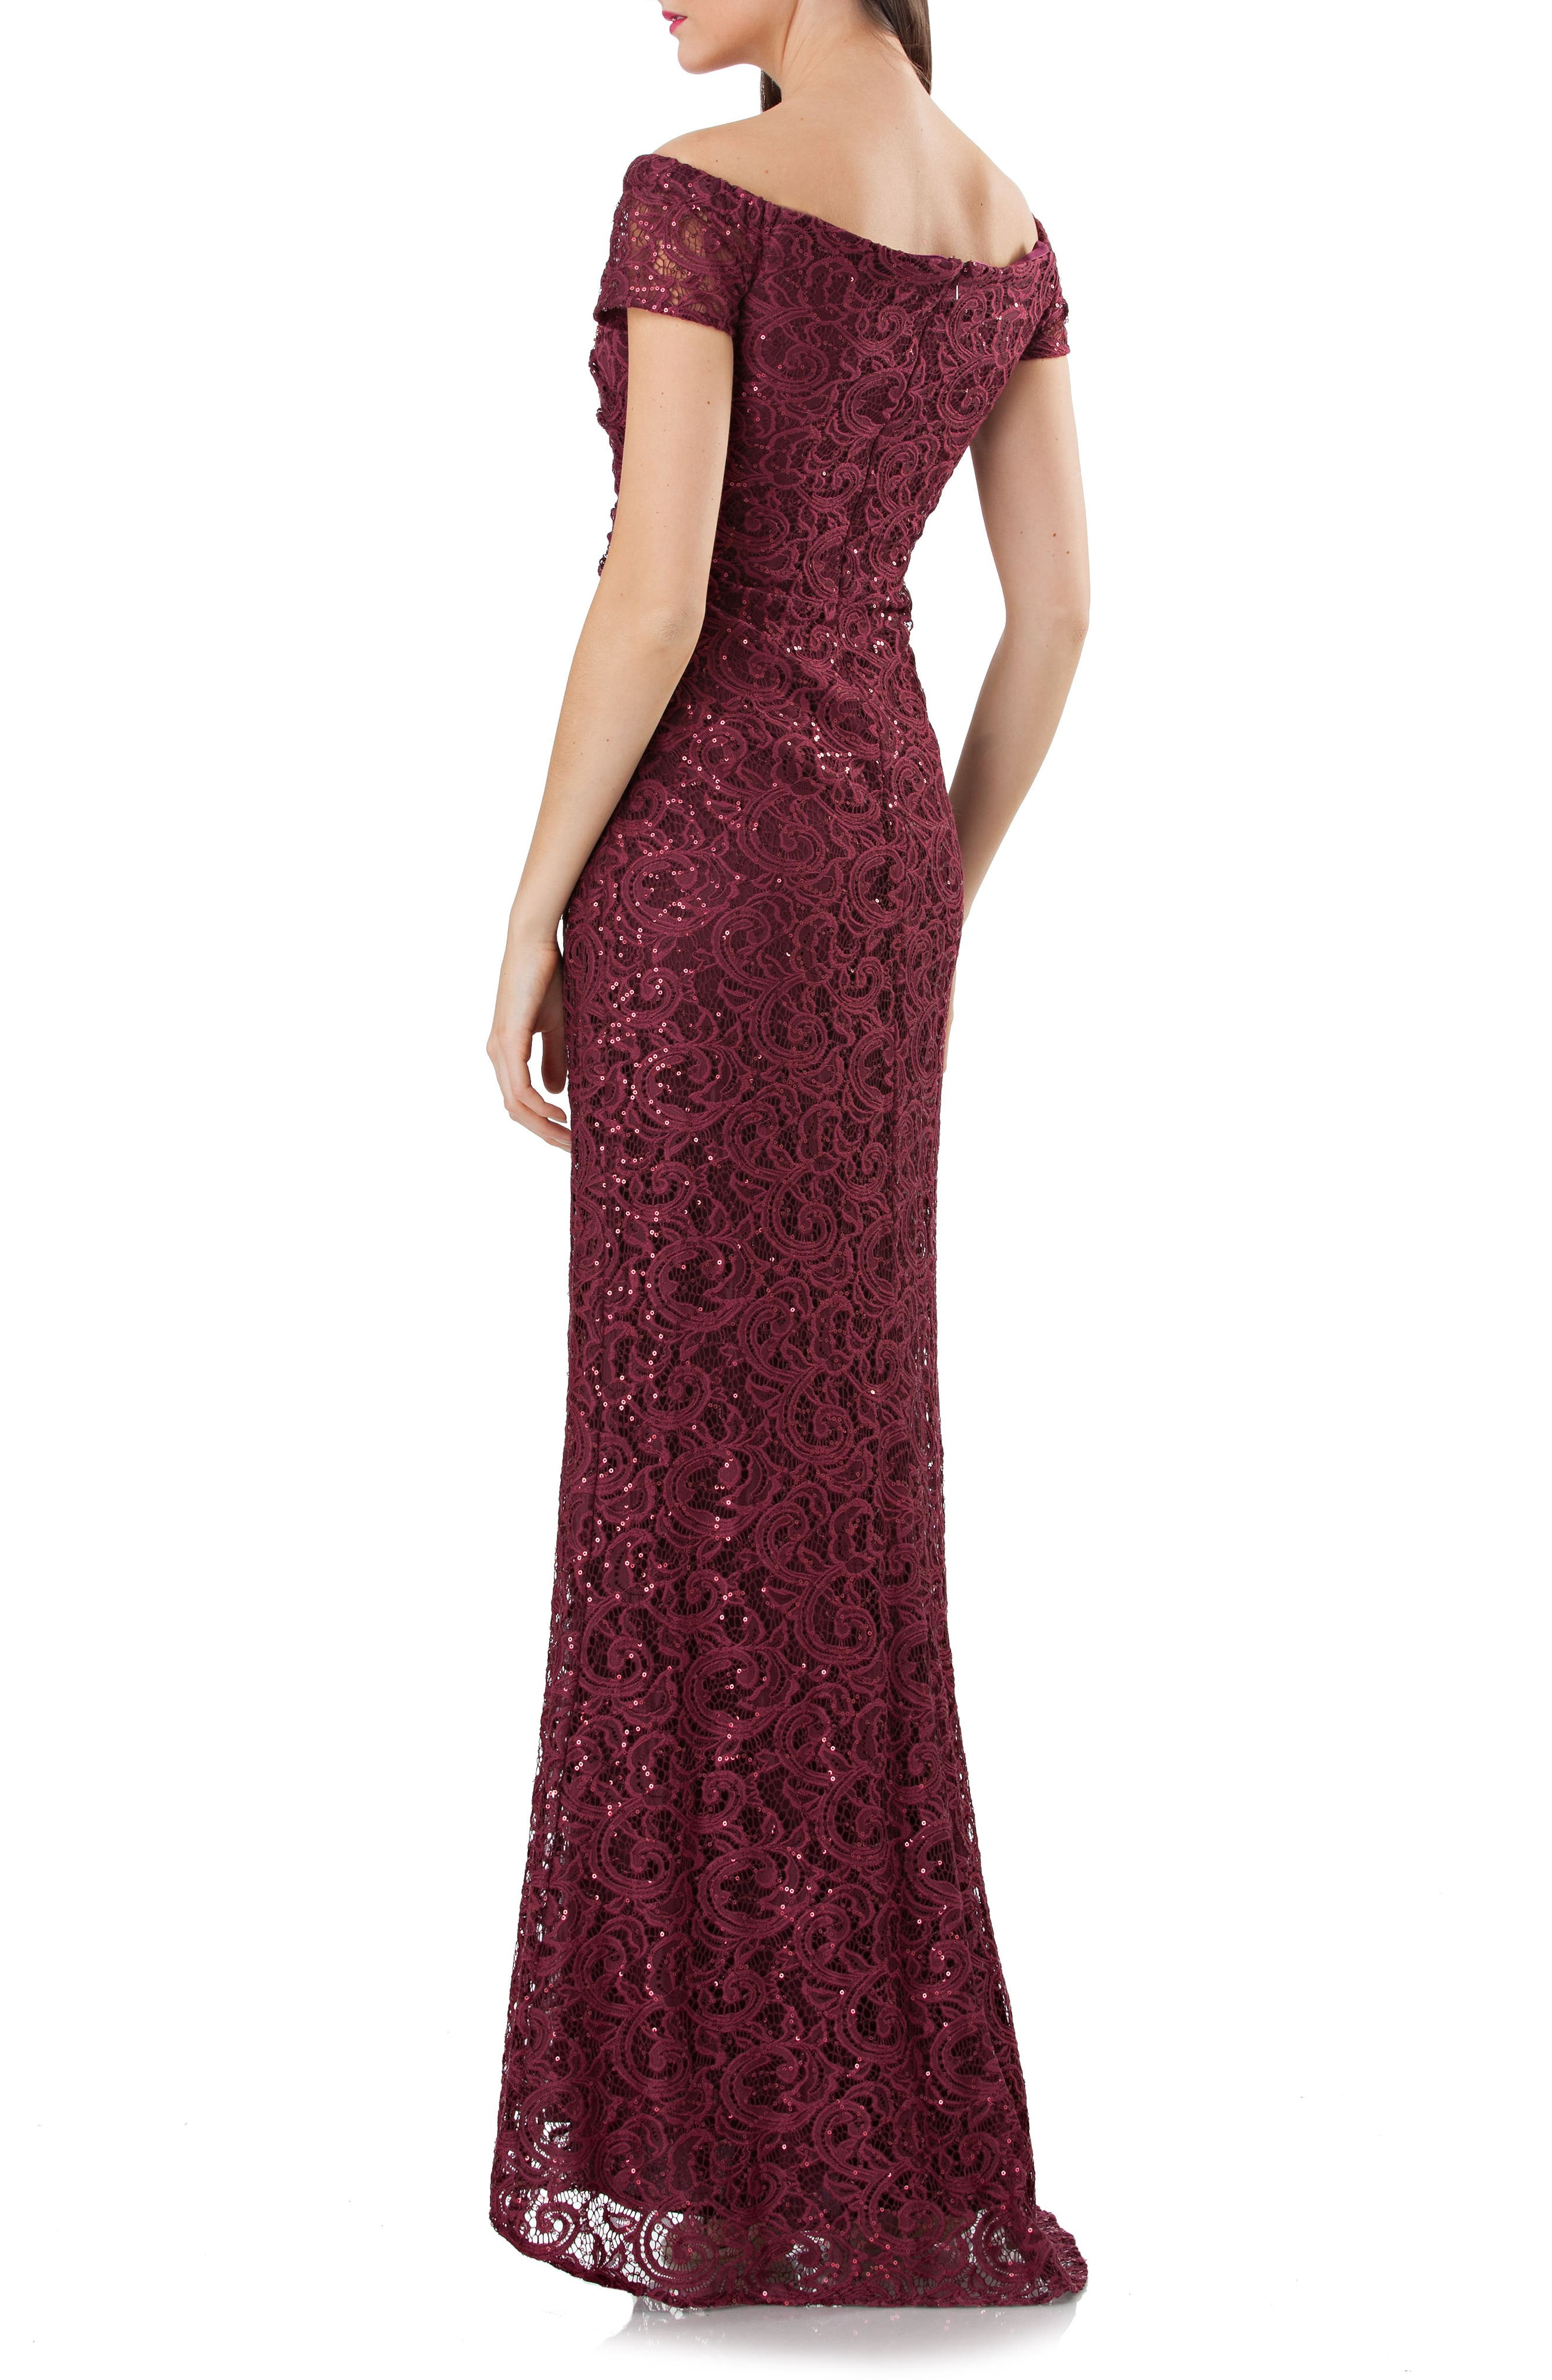 Sequin Lace Off the Shoulder Mermaid Gown,                             Alternate thumbnail 2, color,                             Burgundy